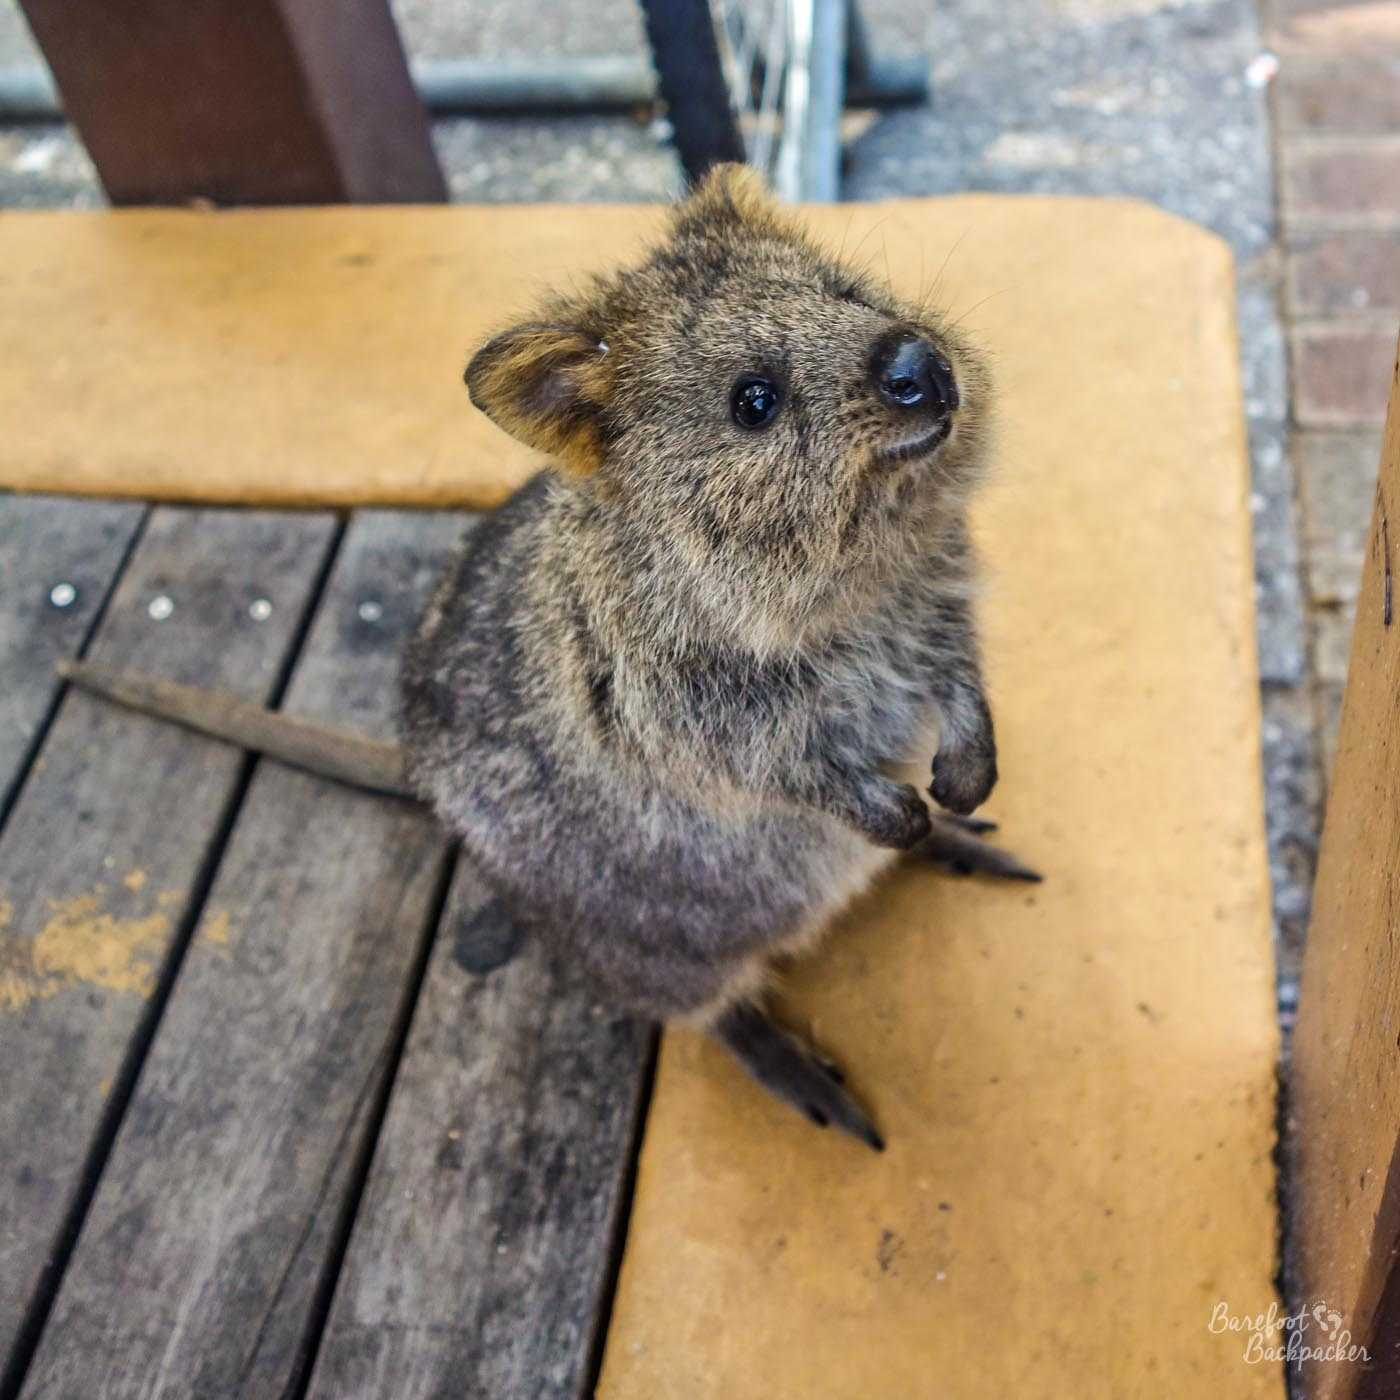 A quokka stands on a table in Rottnest Island (in fact just outside a shop near the port, but you can't see that on the image). It is looking expectantly in front of it, towards the right of shot. No idea what it's expecting.